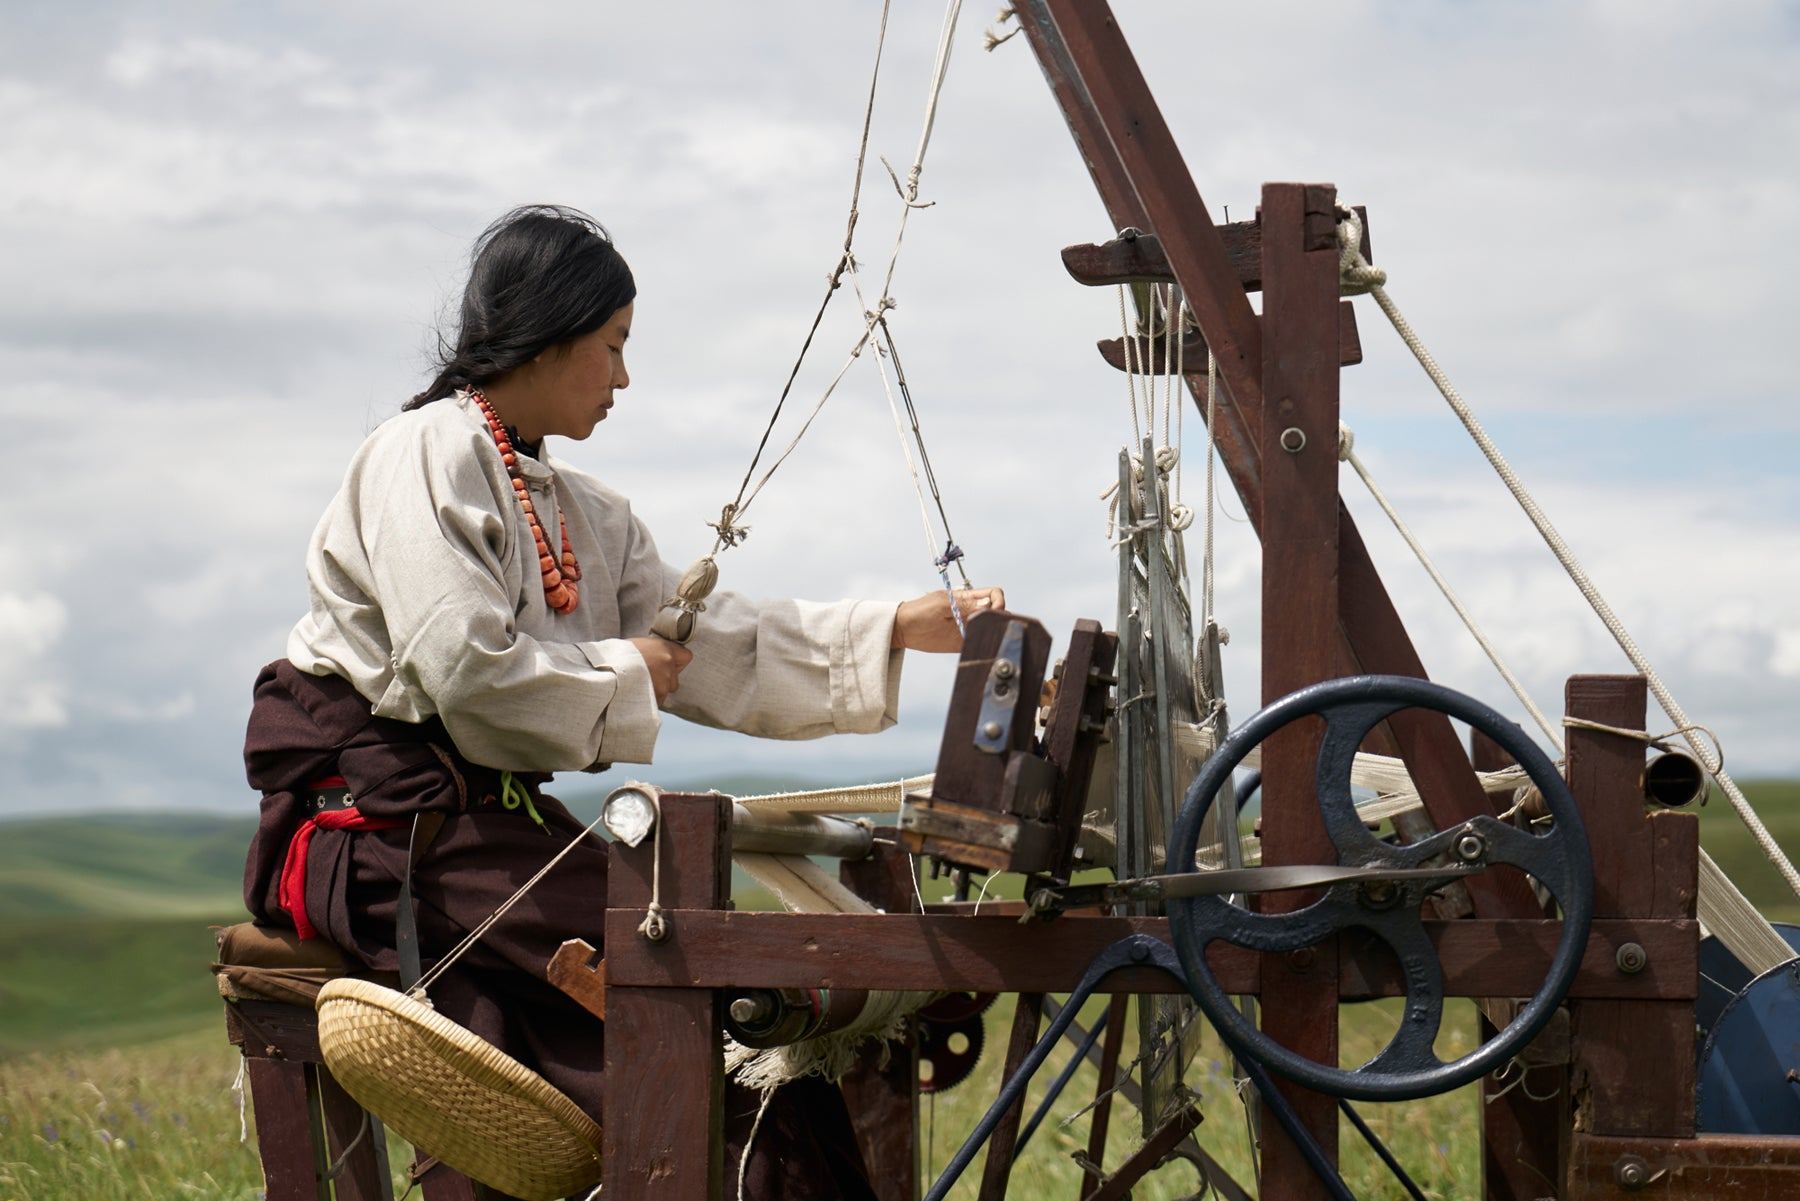 An artisan, in beige shirt and brown pants at an outdoor weaving machine, works on a piece of textile.